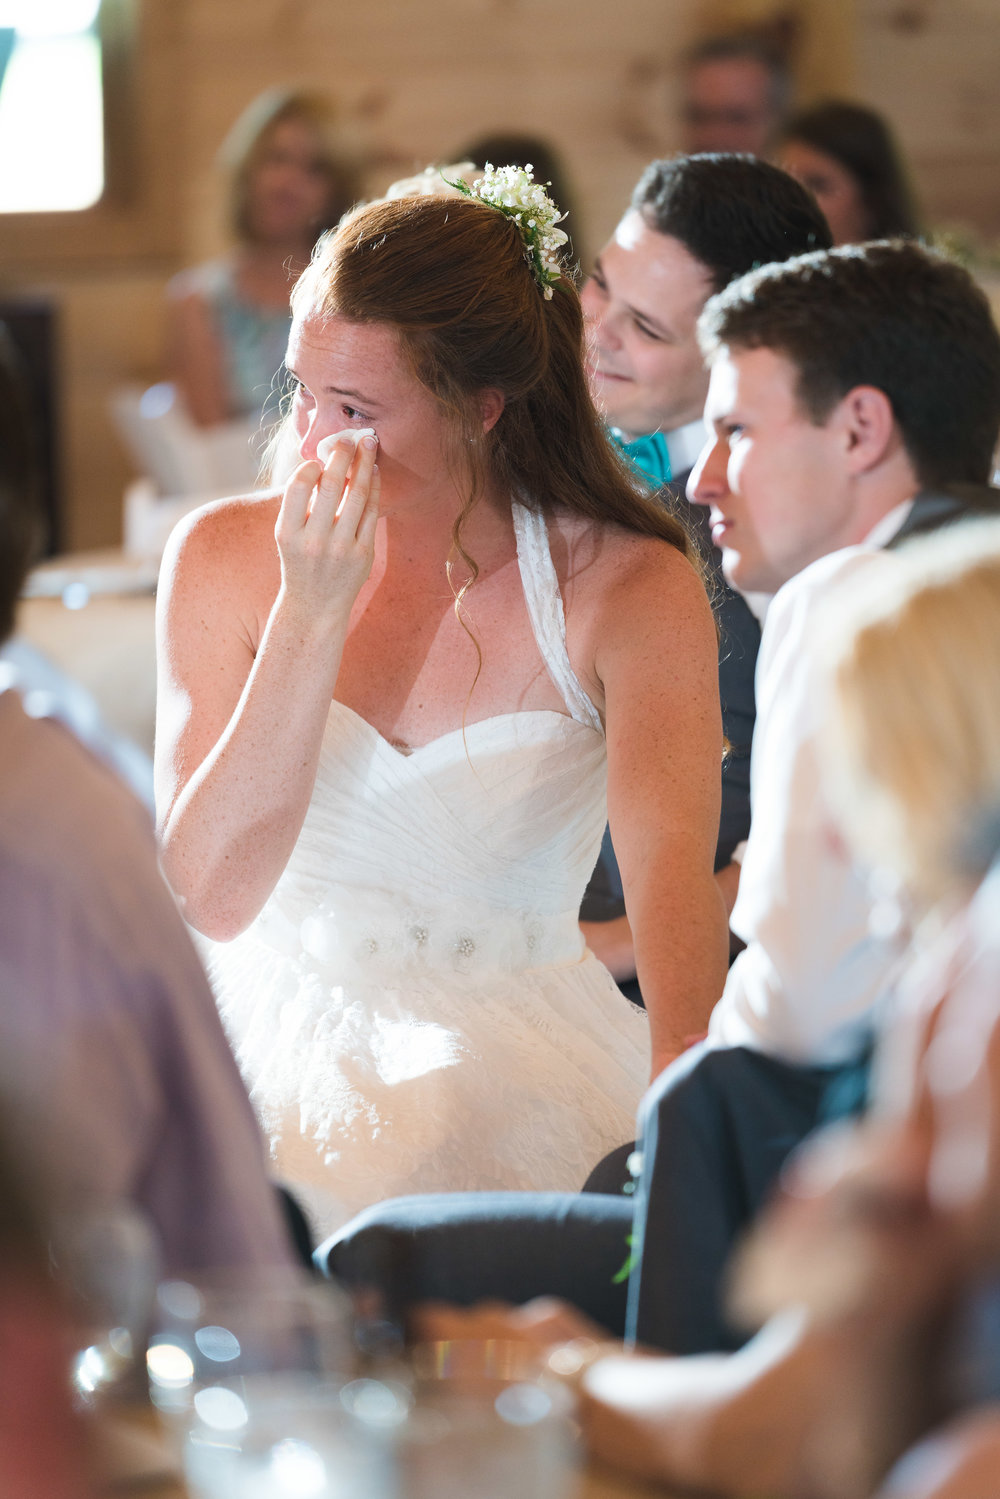 An emotional moment | Windy Hill Wedding and Event Barn in Simpsonville, SC